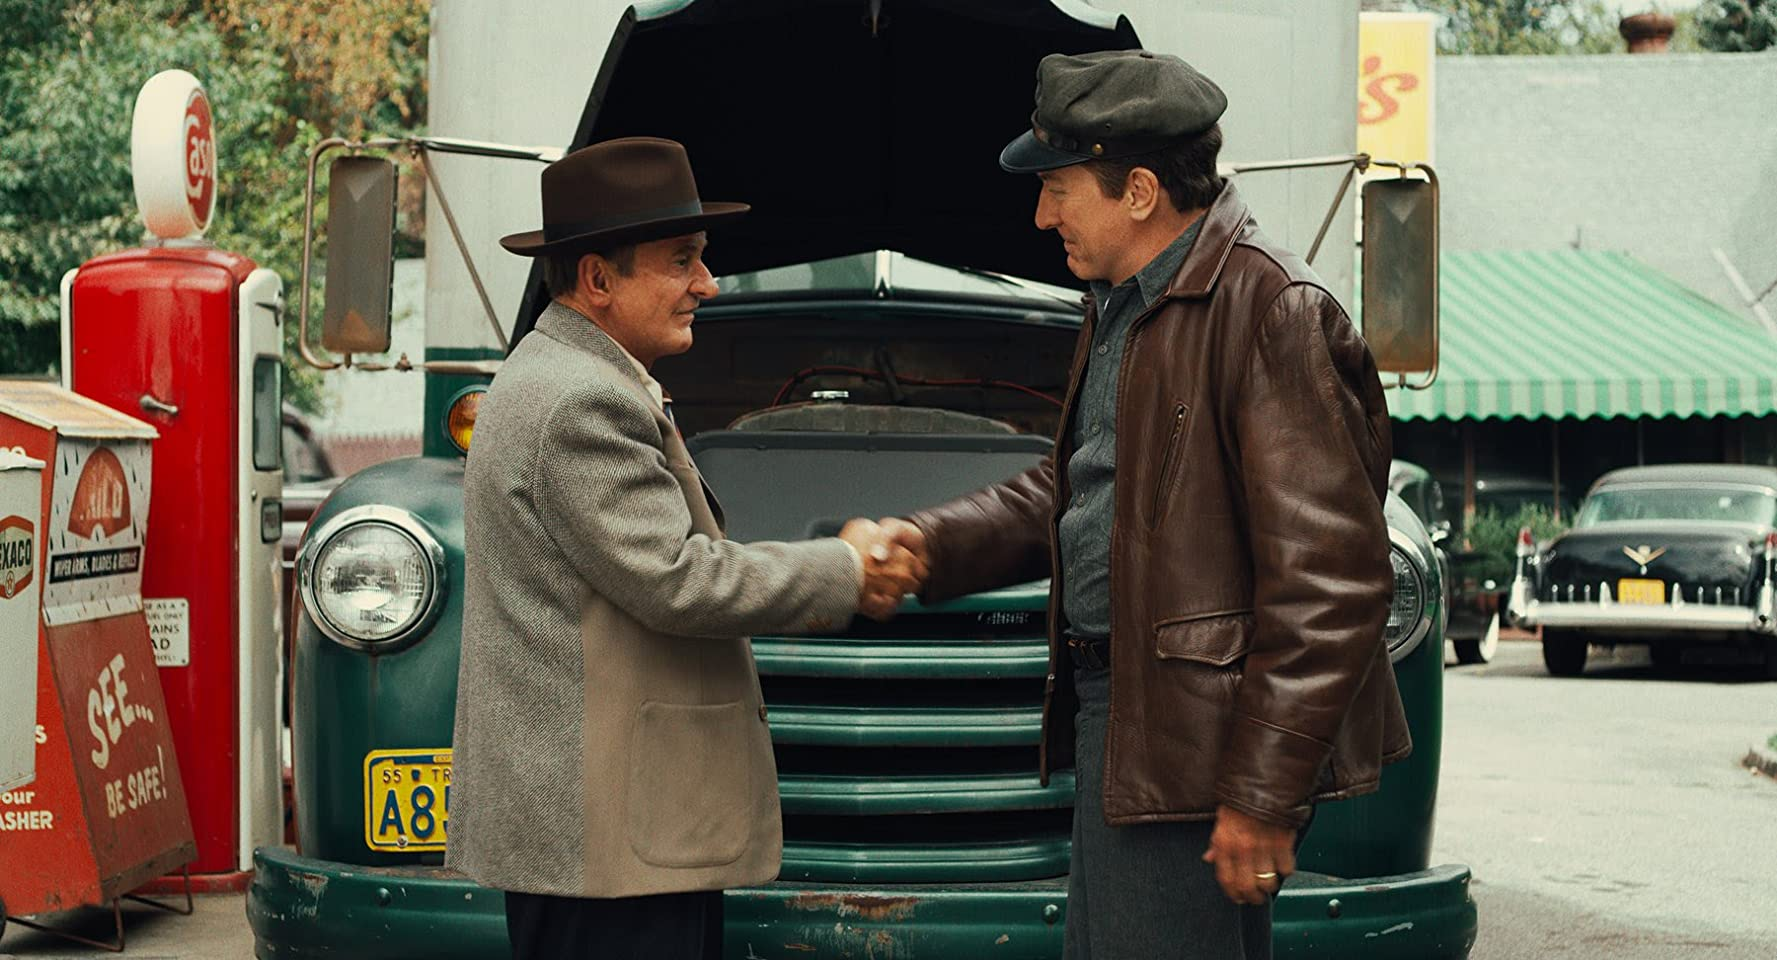 Robert De Niro and Joe Pesci in The Irishman (2019)